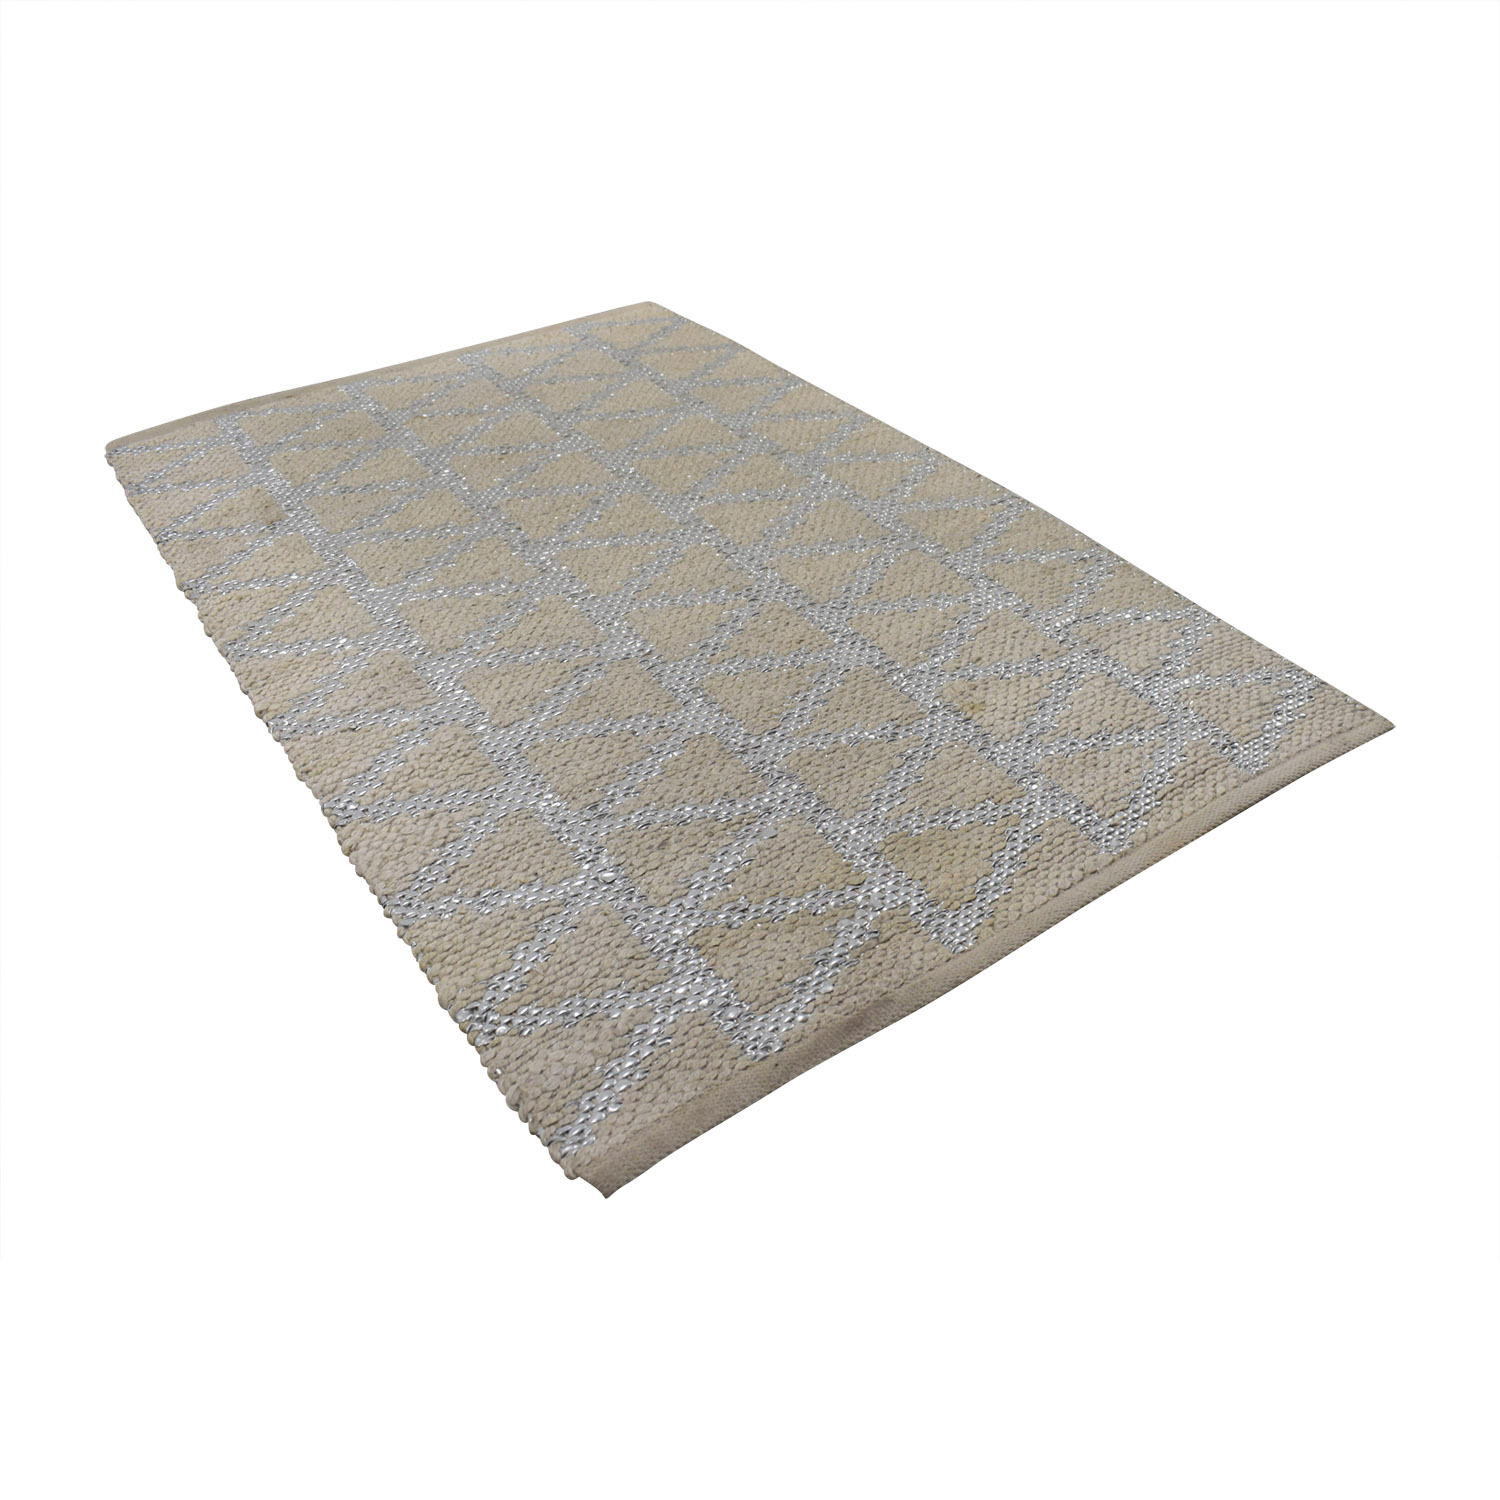 buy West Elm Shimmer Jute Rug West Elm Decor